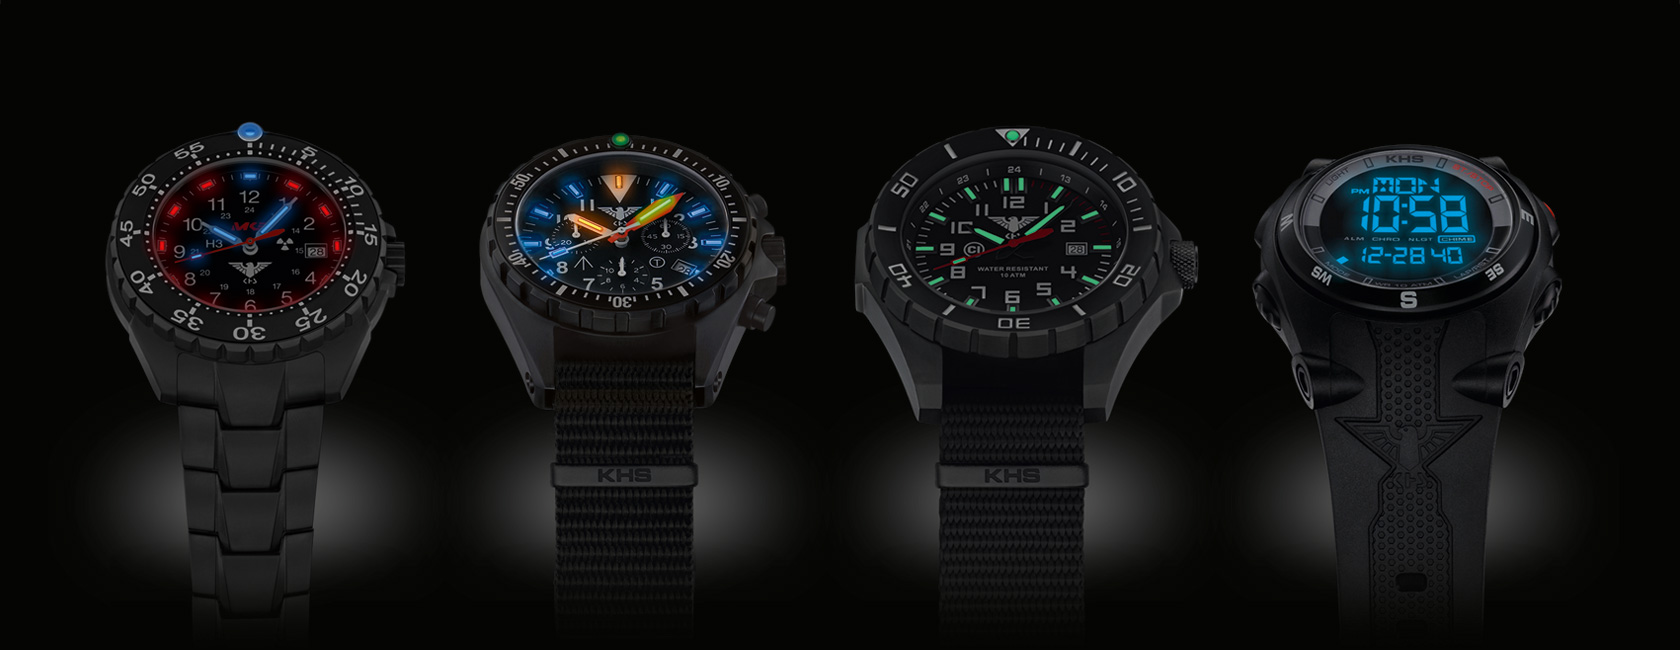 khs h3 watches and special ops watches official khs shop